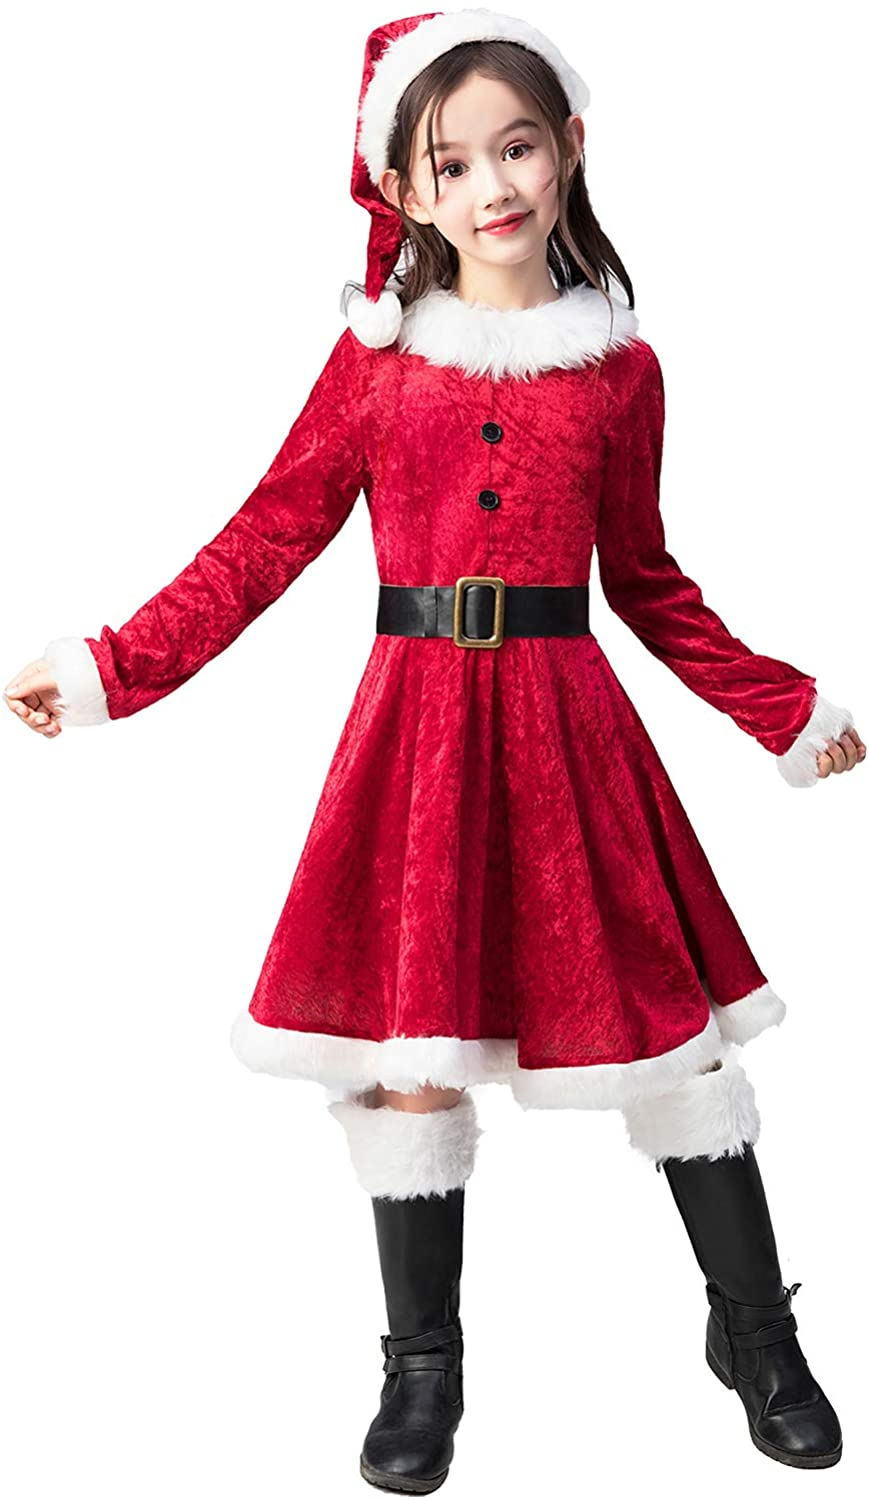 Takuvan Little Mrs. Santa Suit Girls Christmas Dress Outfit, Kids Halloween Cosplay Costume for Party